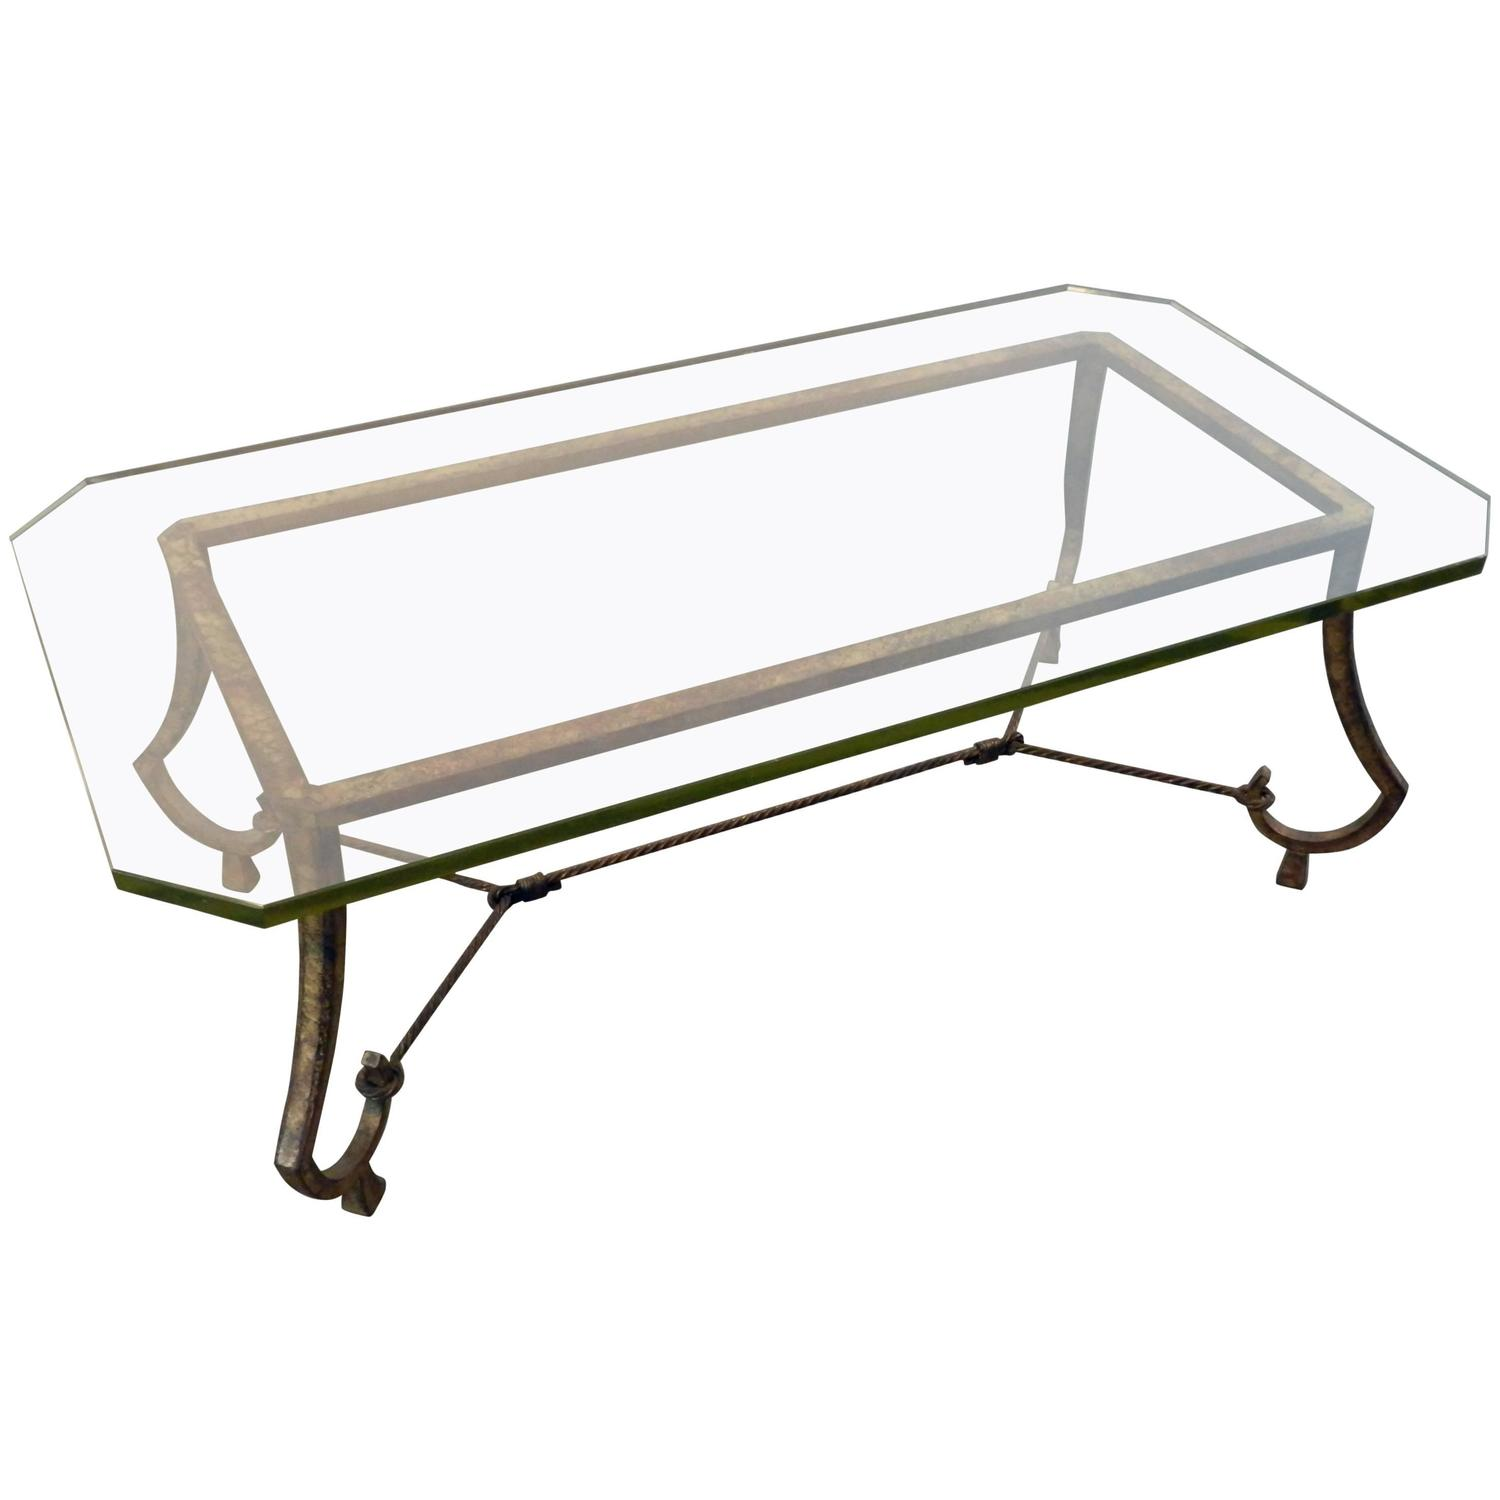 Maison ramsay patina gold leaf wrought iron coffee table at 1stdibs Wrought iron coffee tables